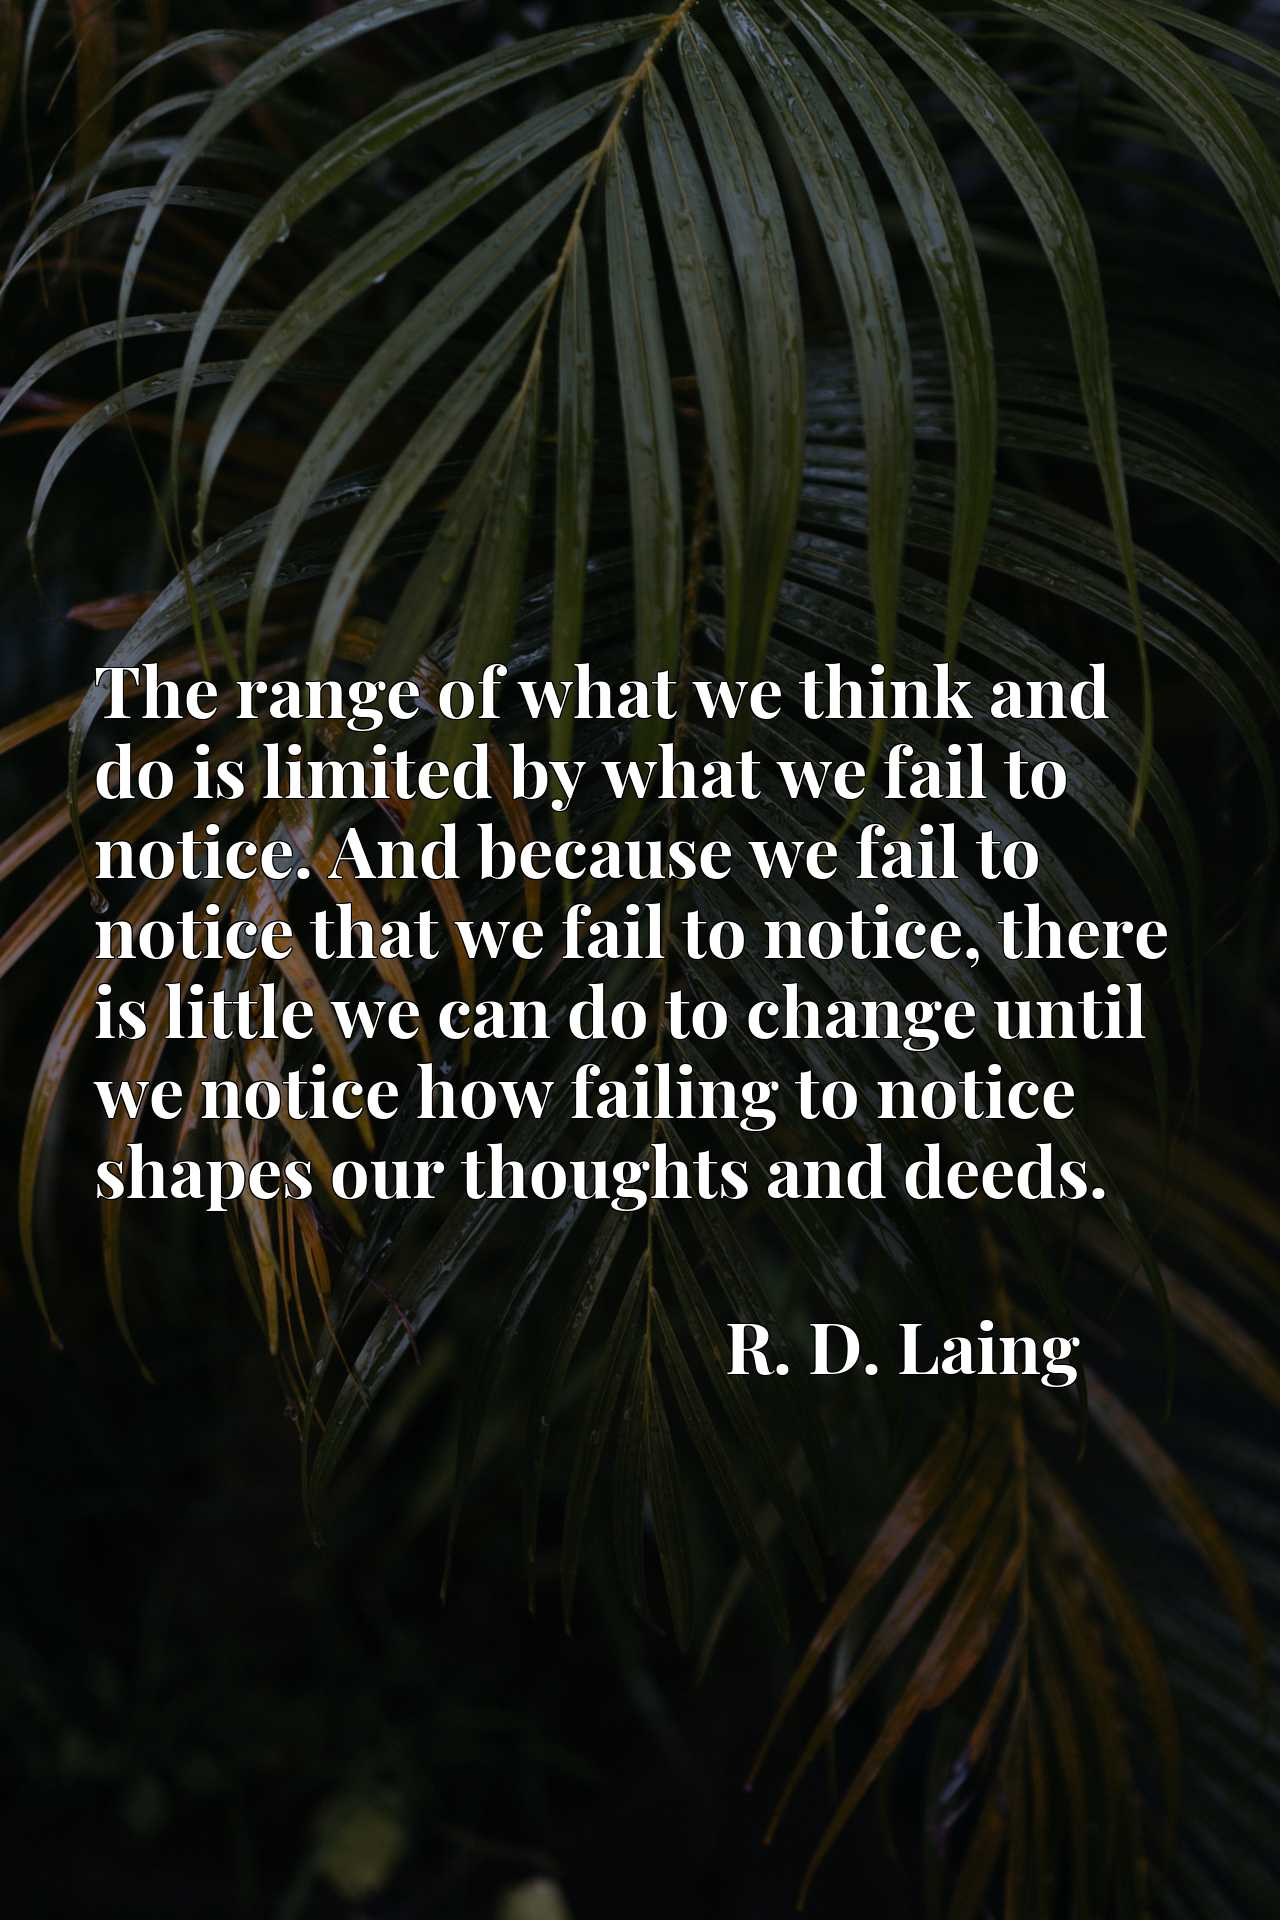 The range of what we think and do is limited by what we fail to notice. And because we fail to notice that we fail to notice, there is little we can do to change until we notice how failing to notice shapes our thoughts and deeds.